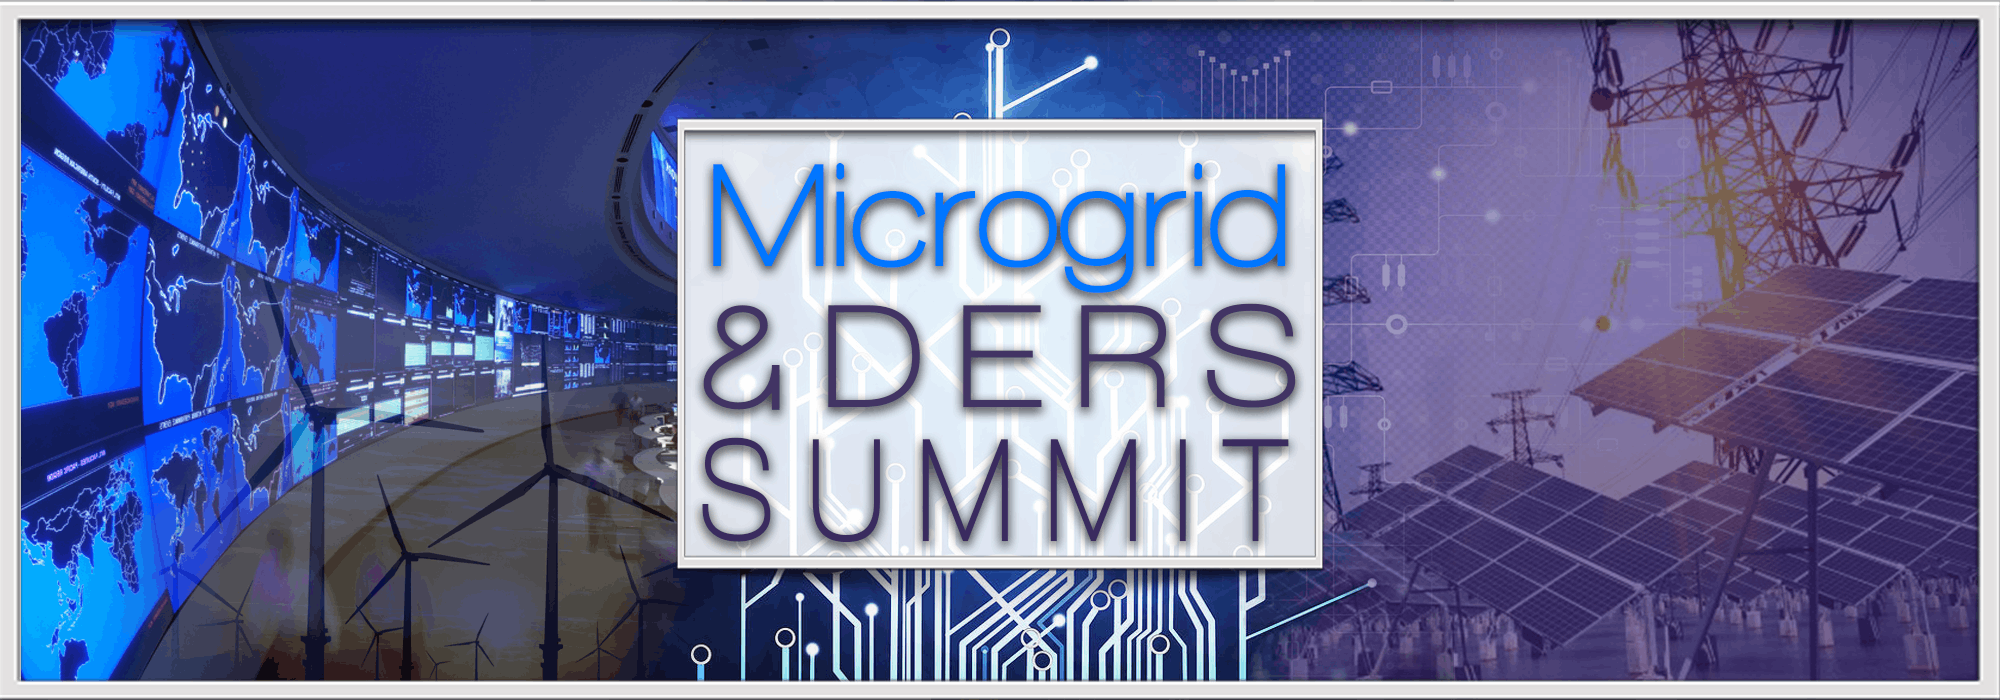 Microgrid Banner